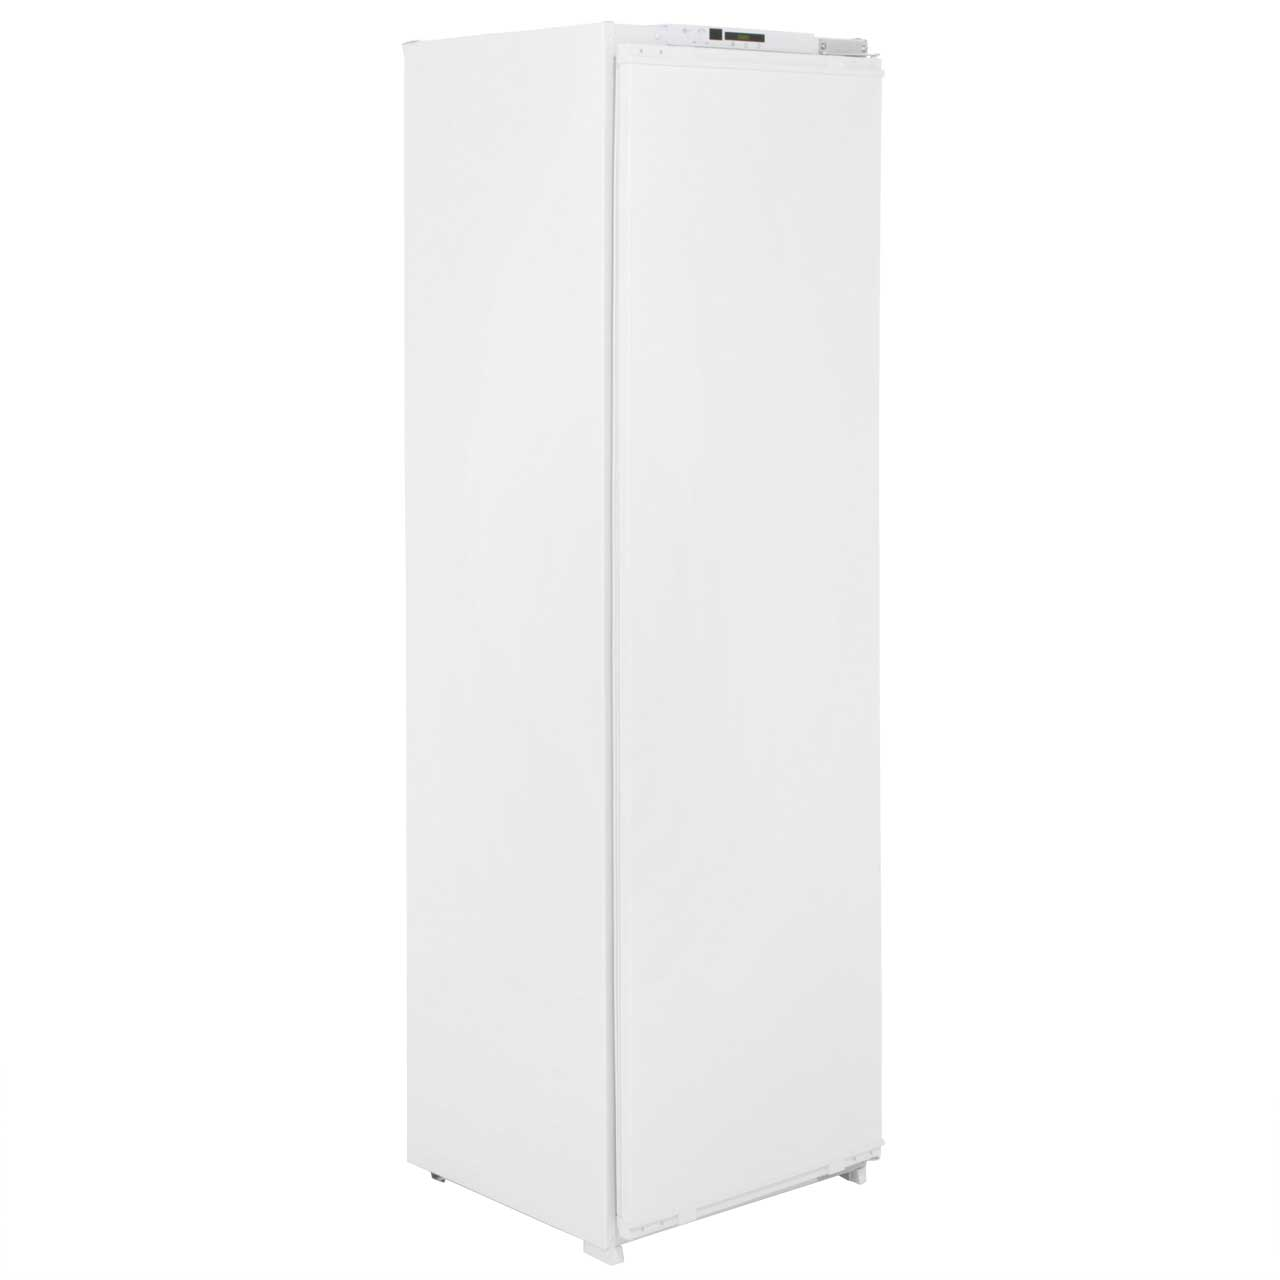 Beko BL77 Integrated Larder Fridge in White